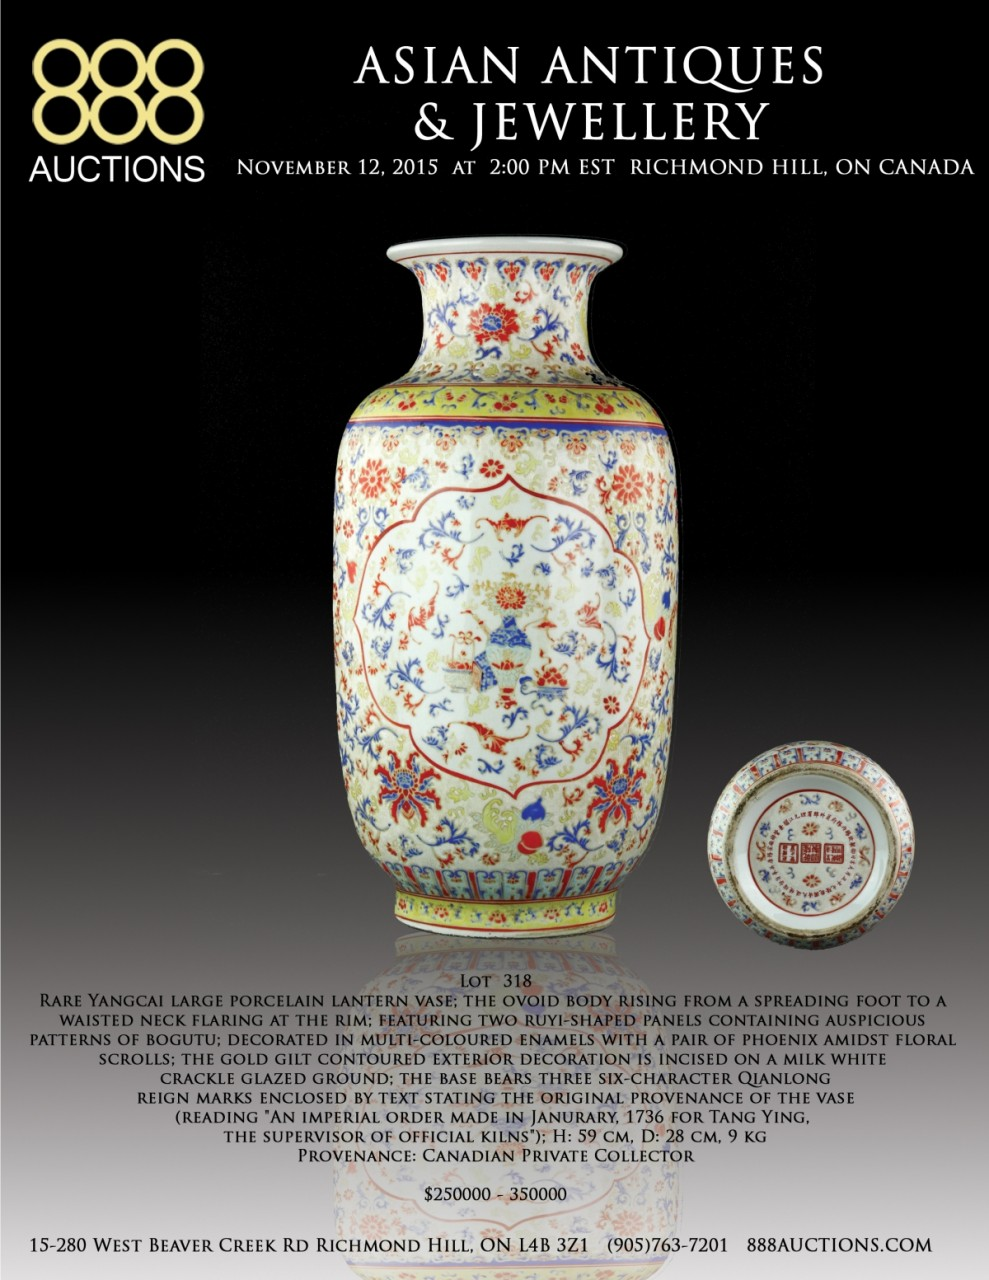 NEXT AUCTION 12 NOV 2015 ASIAN ANTIQUES & JEWELLERY